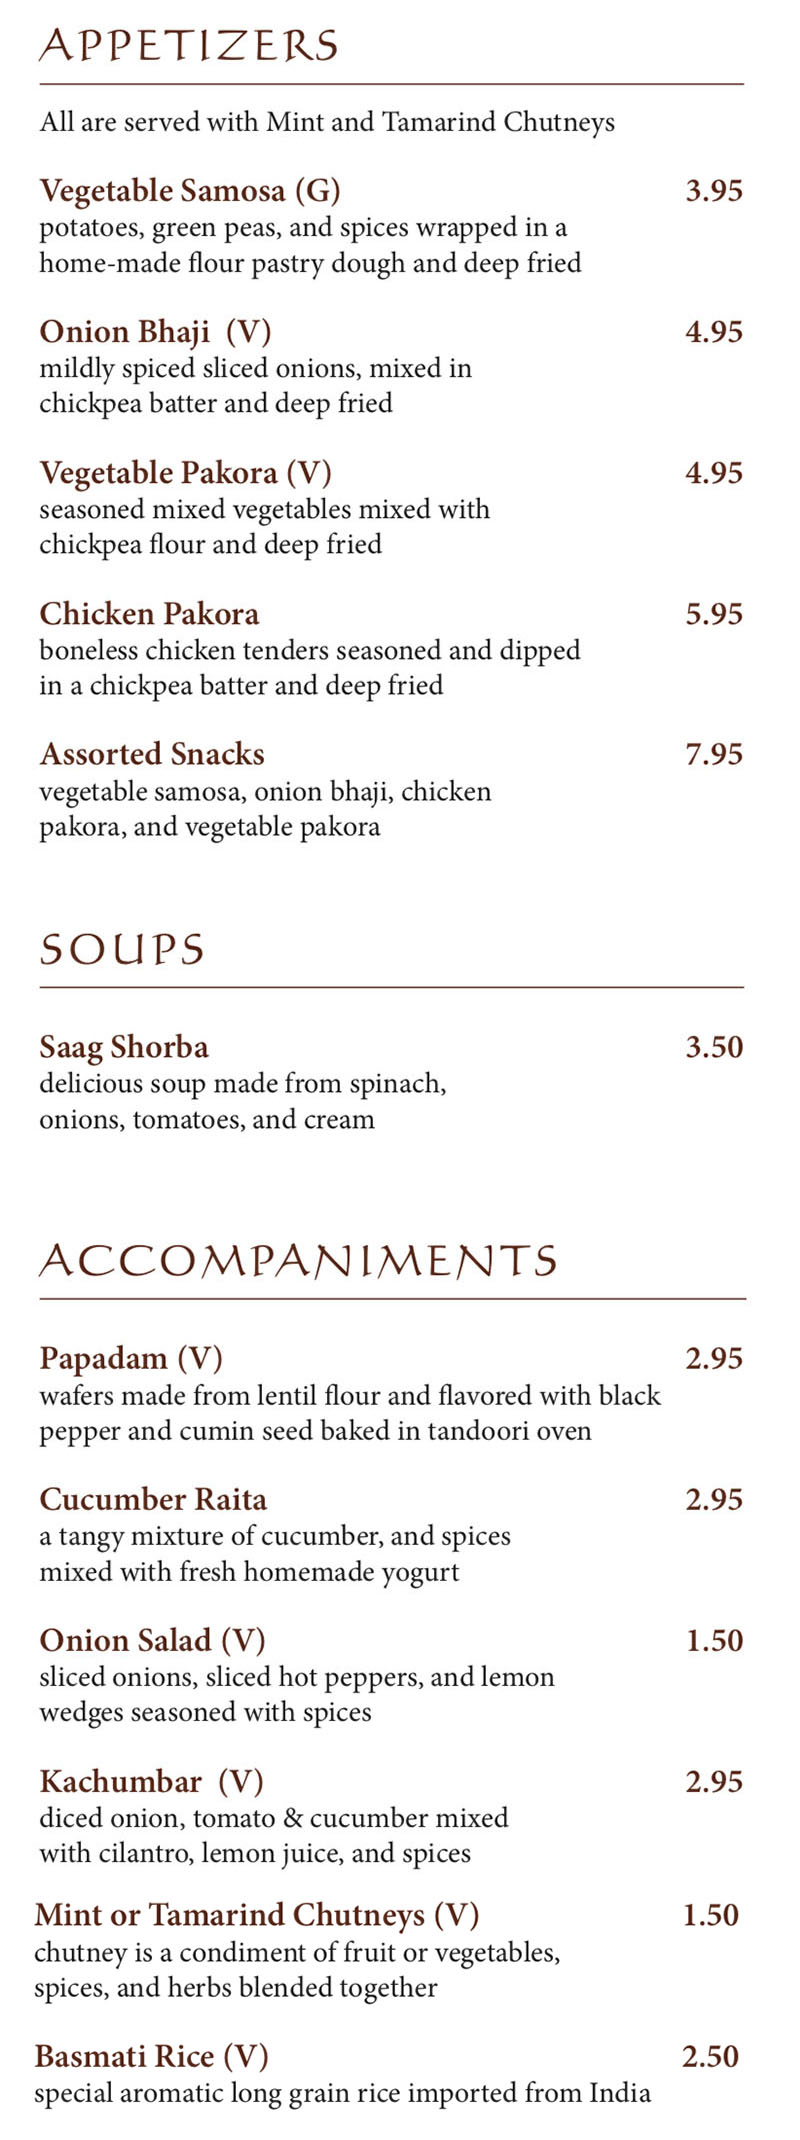 Bombay House menu - appetizers, soups, accompaniments